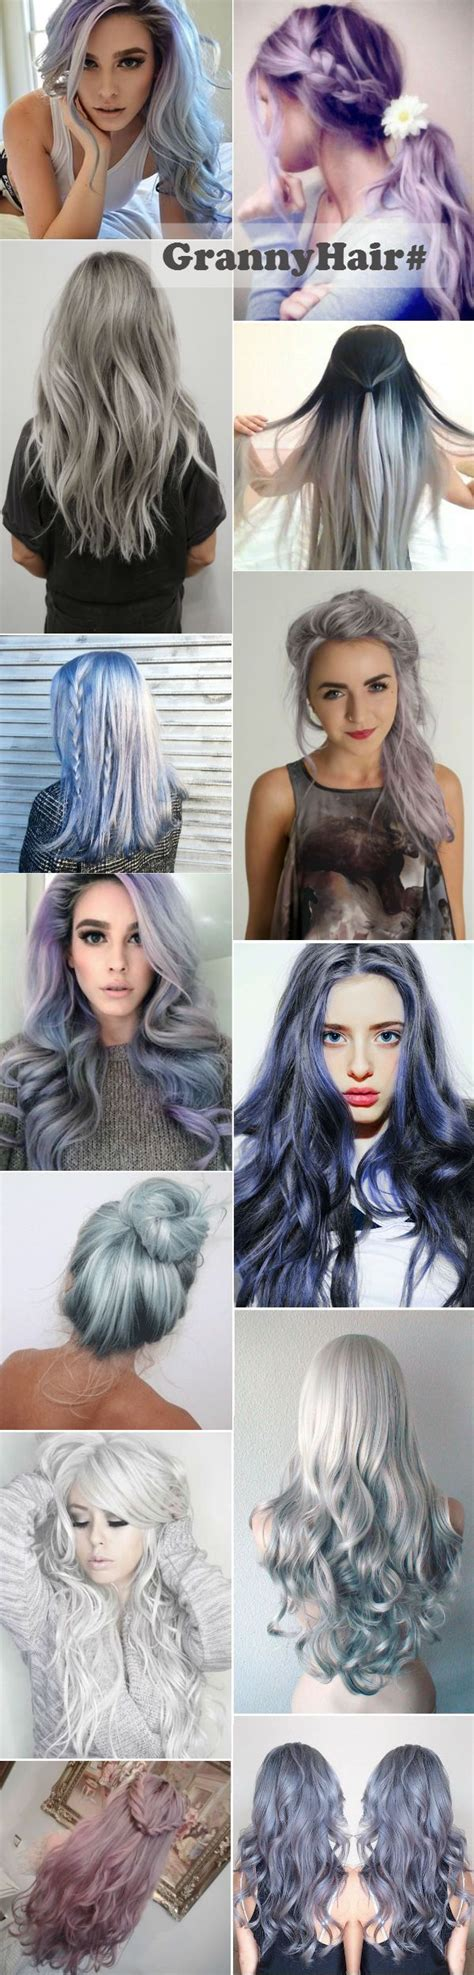 granny hair colour 2015 127 best images about hair trends 2016 on pinterest